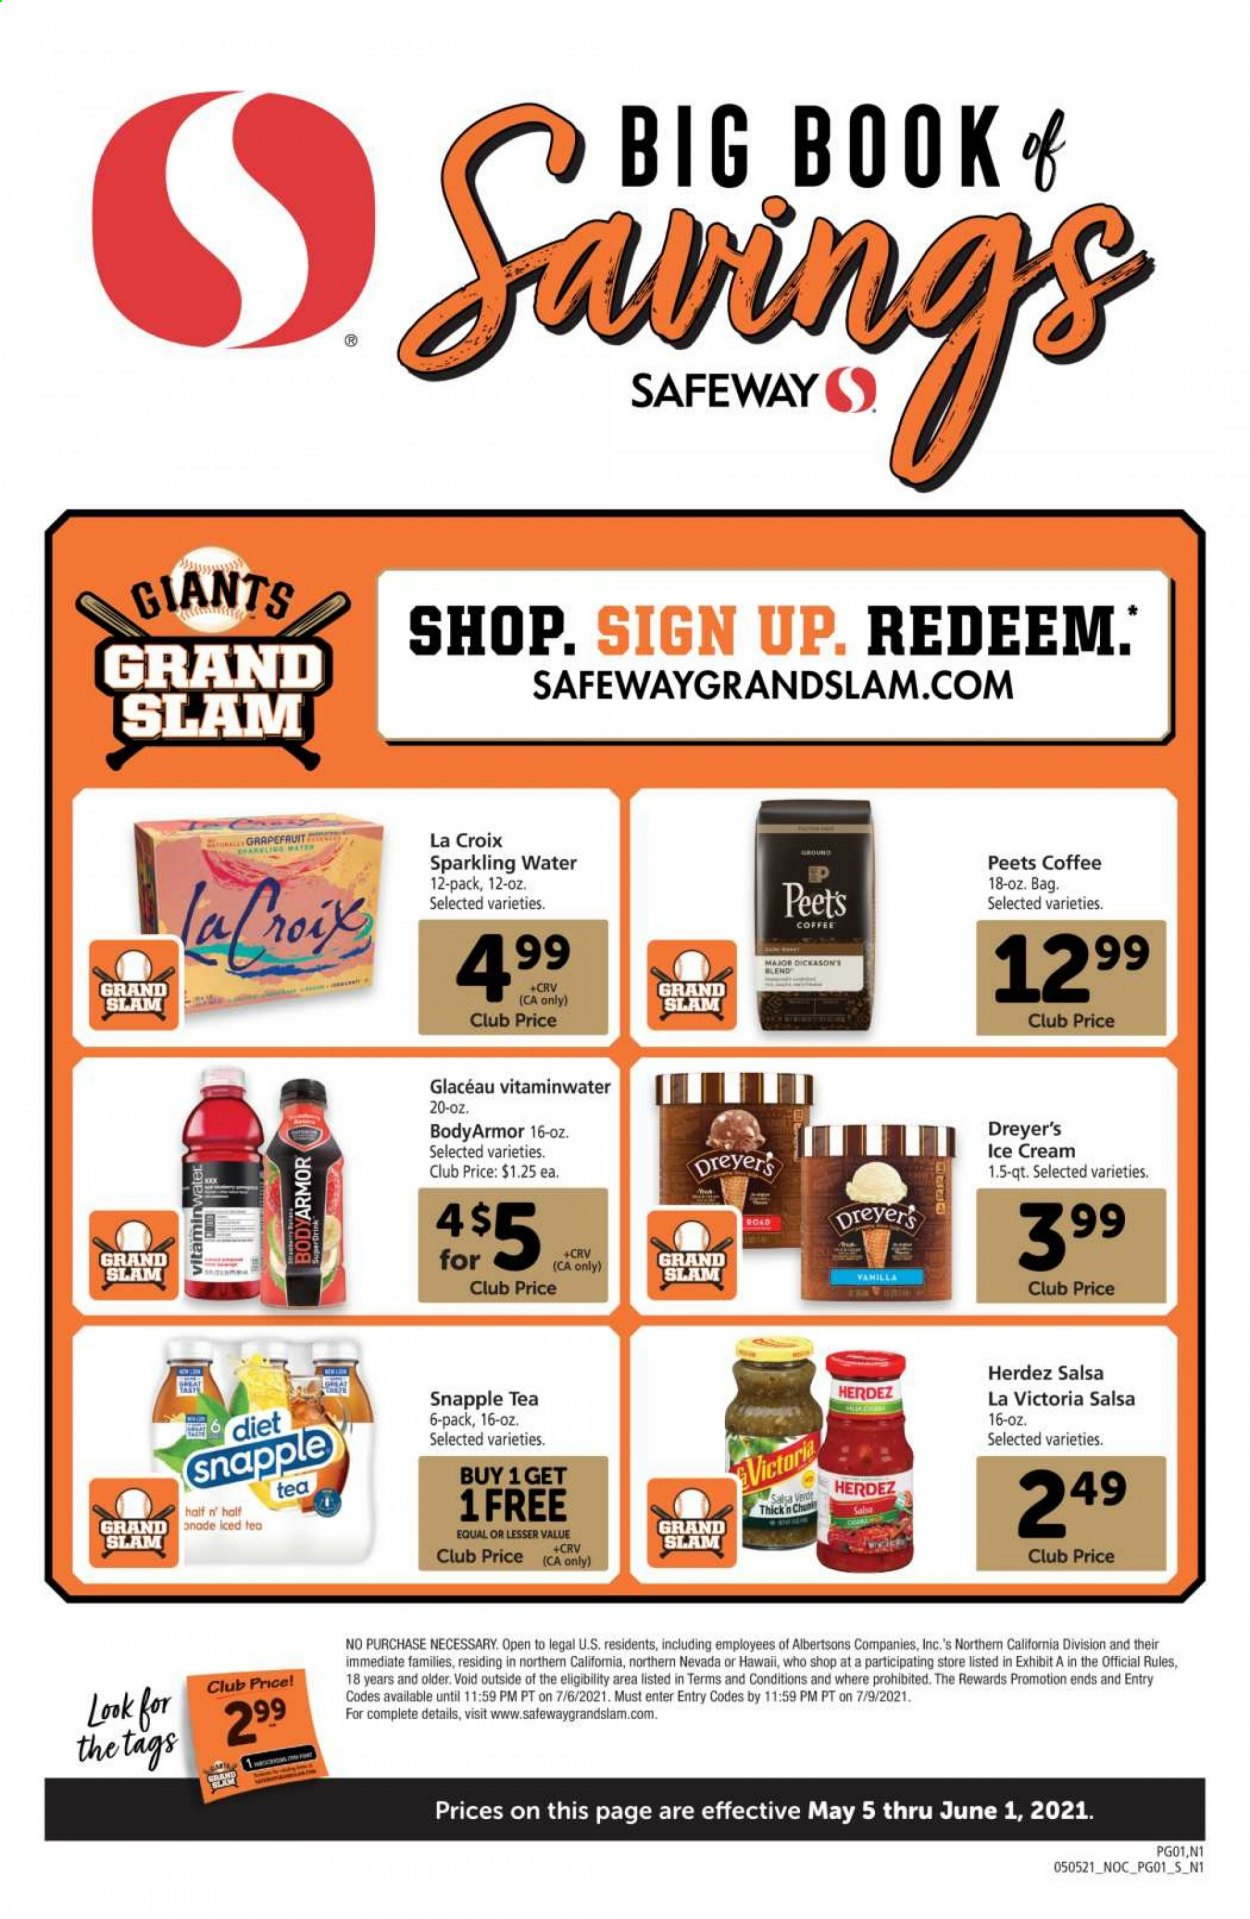 Safeway Big Book of Savings Ad from may 5 to june 1 2021